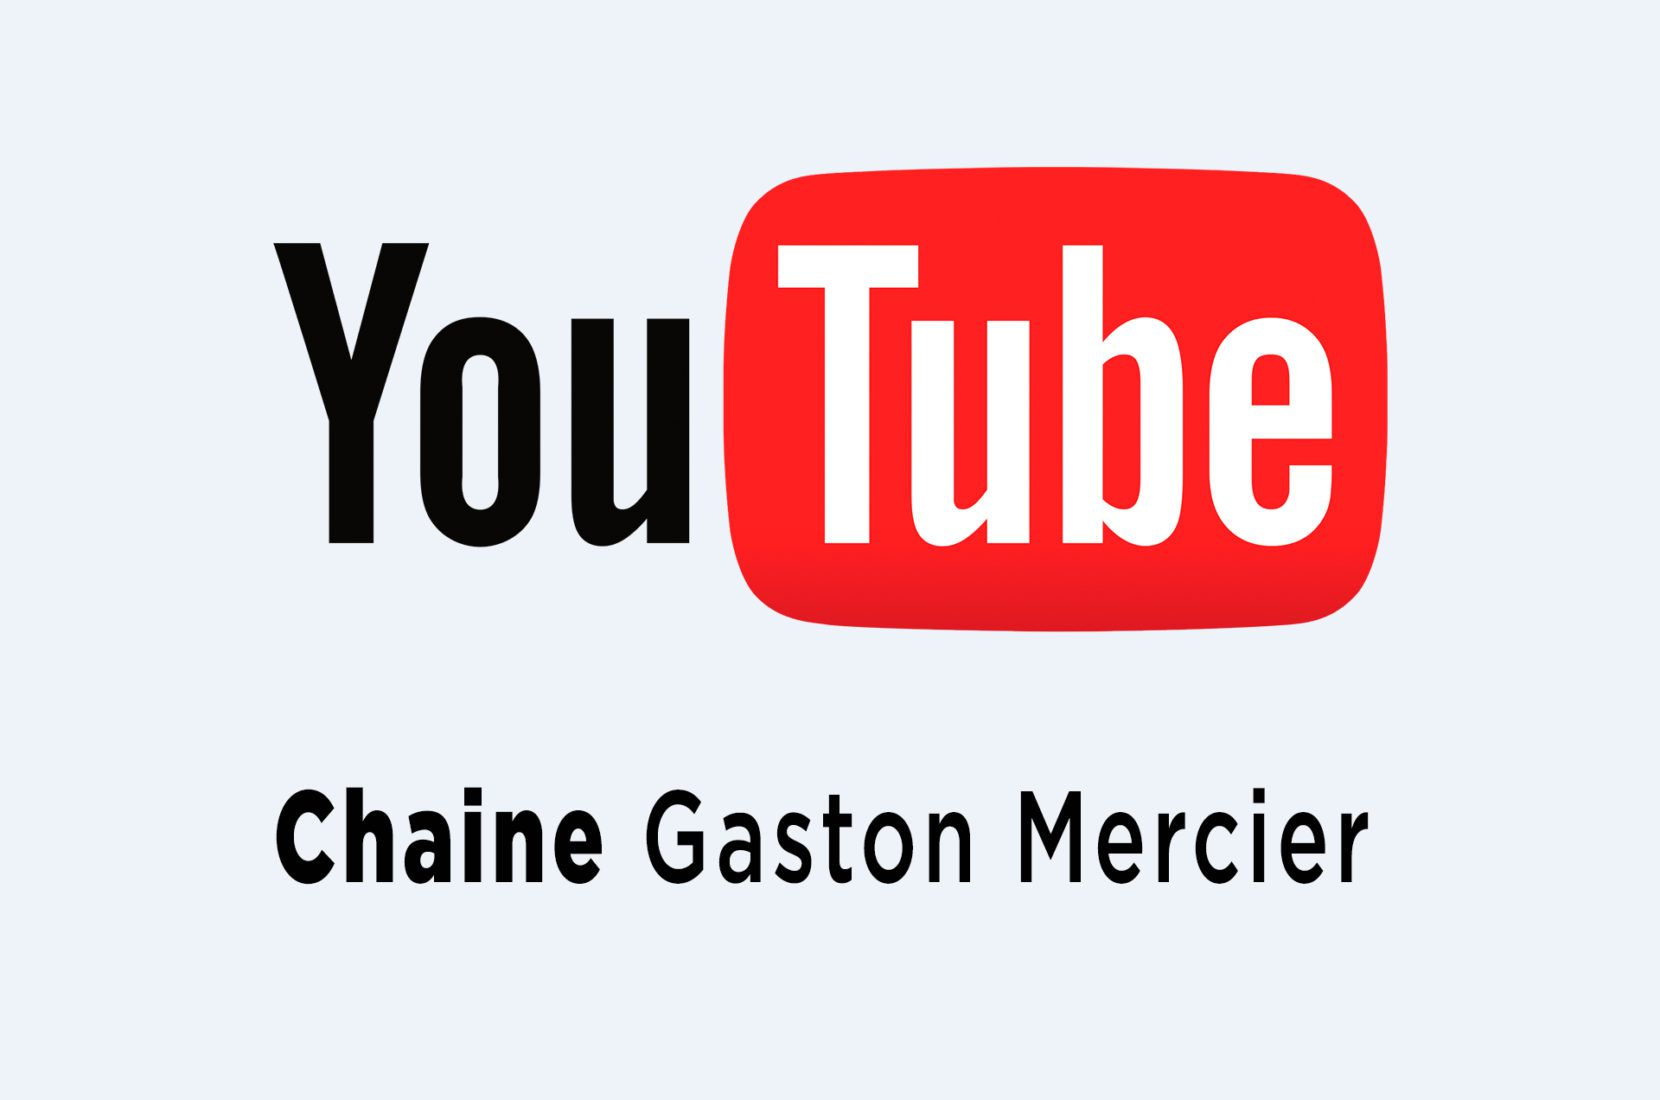 CHAINE YOUTUBE GASTON MERCIER